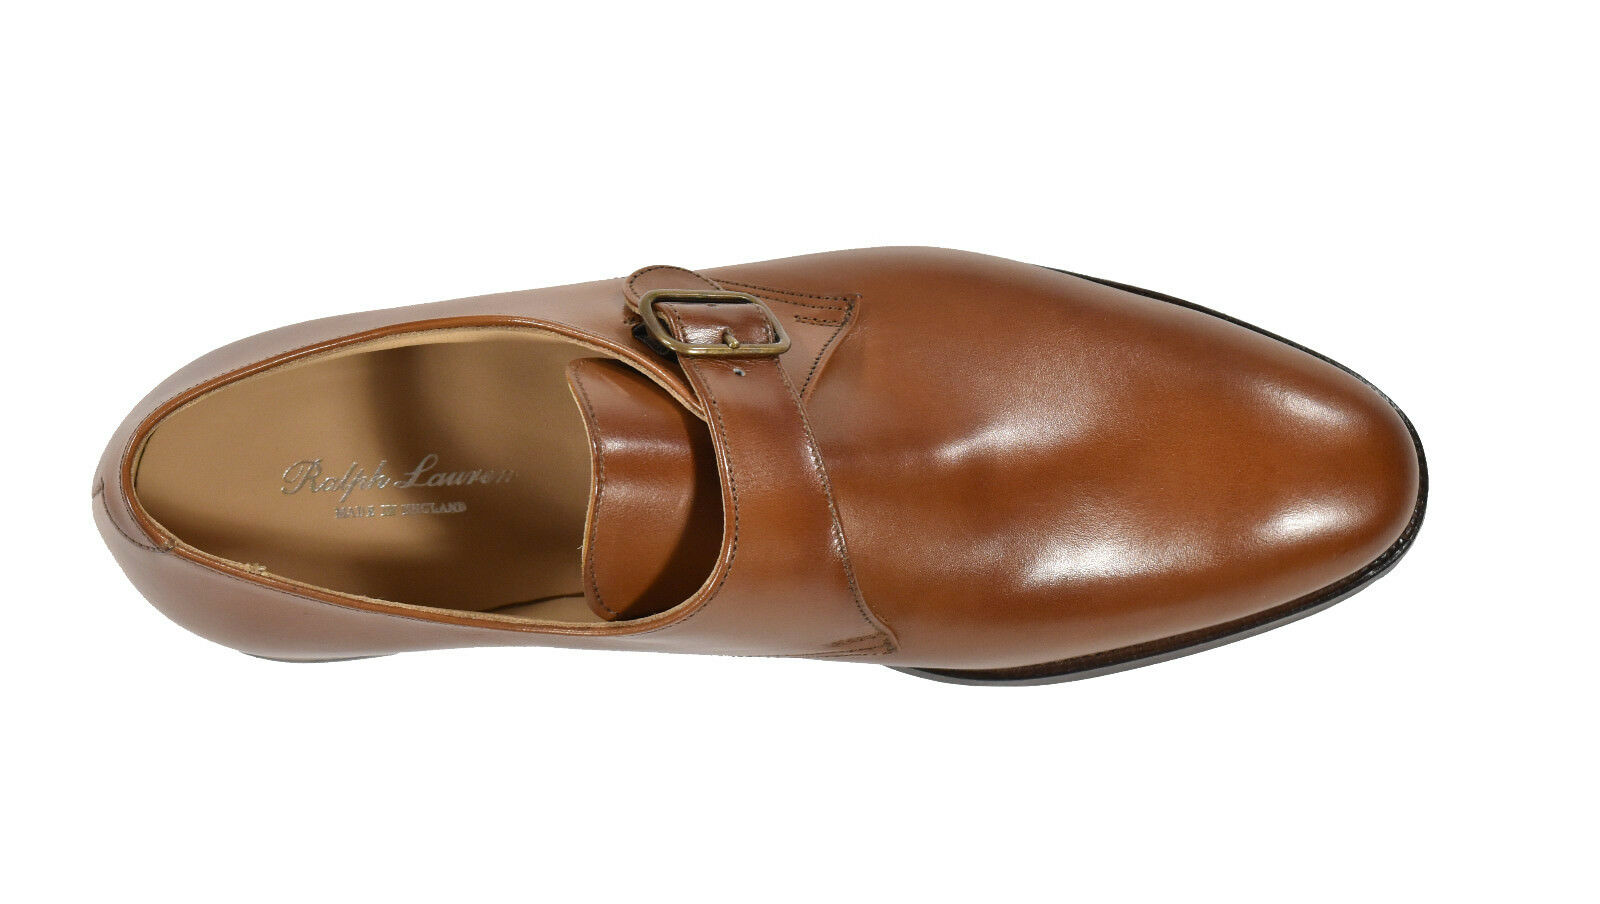 Ralph Lauren Crockett & Jones Tan Pelle Pelle Pelle Roundwood Monkstrap Shoes New  895 3f71cd